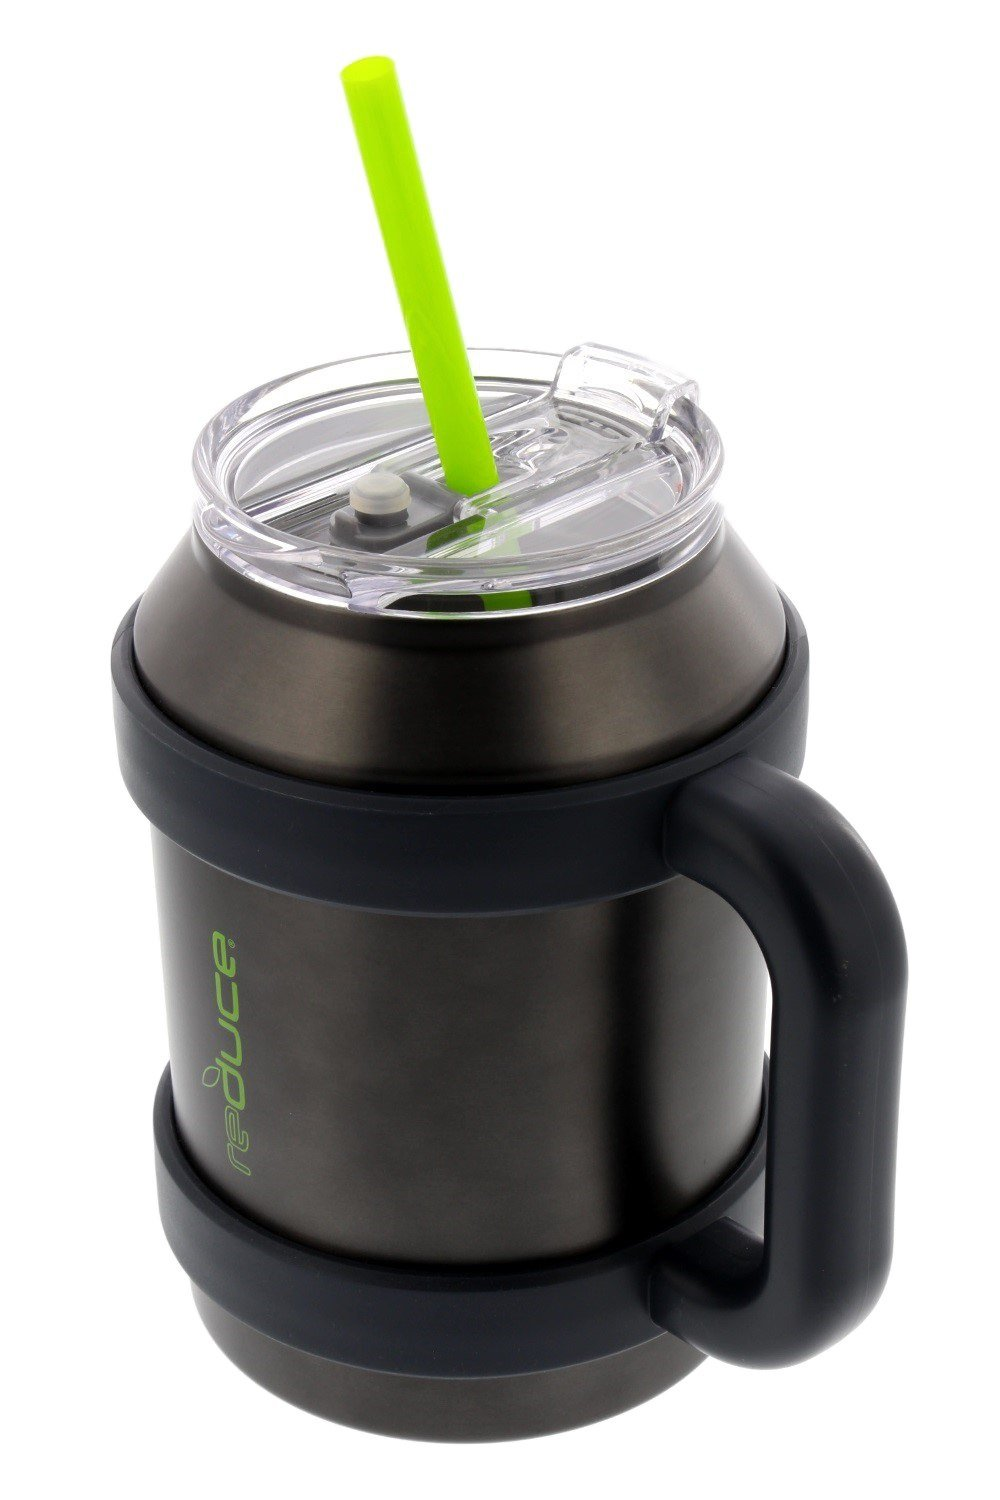 Stainless Steel Large 50oz Cold-1 Thermal Coffee & Water Mug by REDUCE - Dual Wall Vacuum Insulated Mug - Perfect for Hot & Cold Drinks - Includes Straw, Leak-Proof Lid and Handle, Gray w/Lime